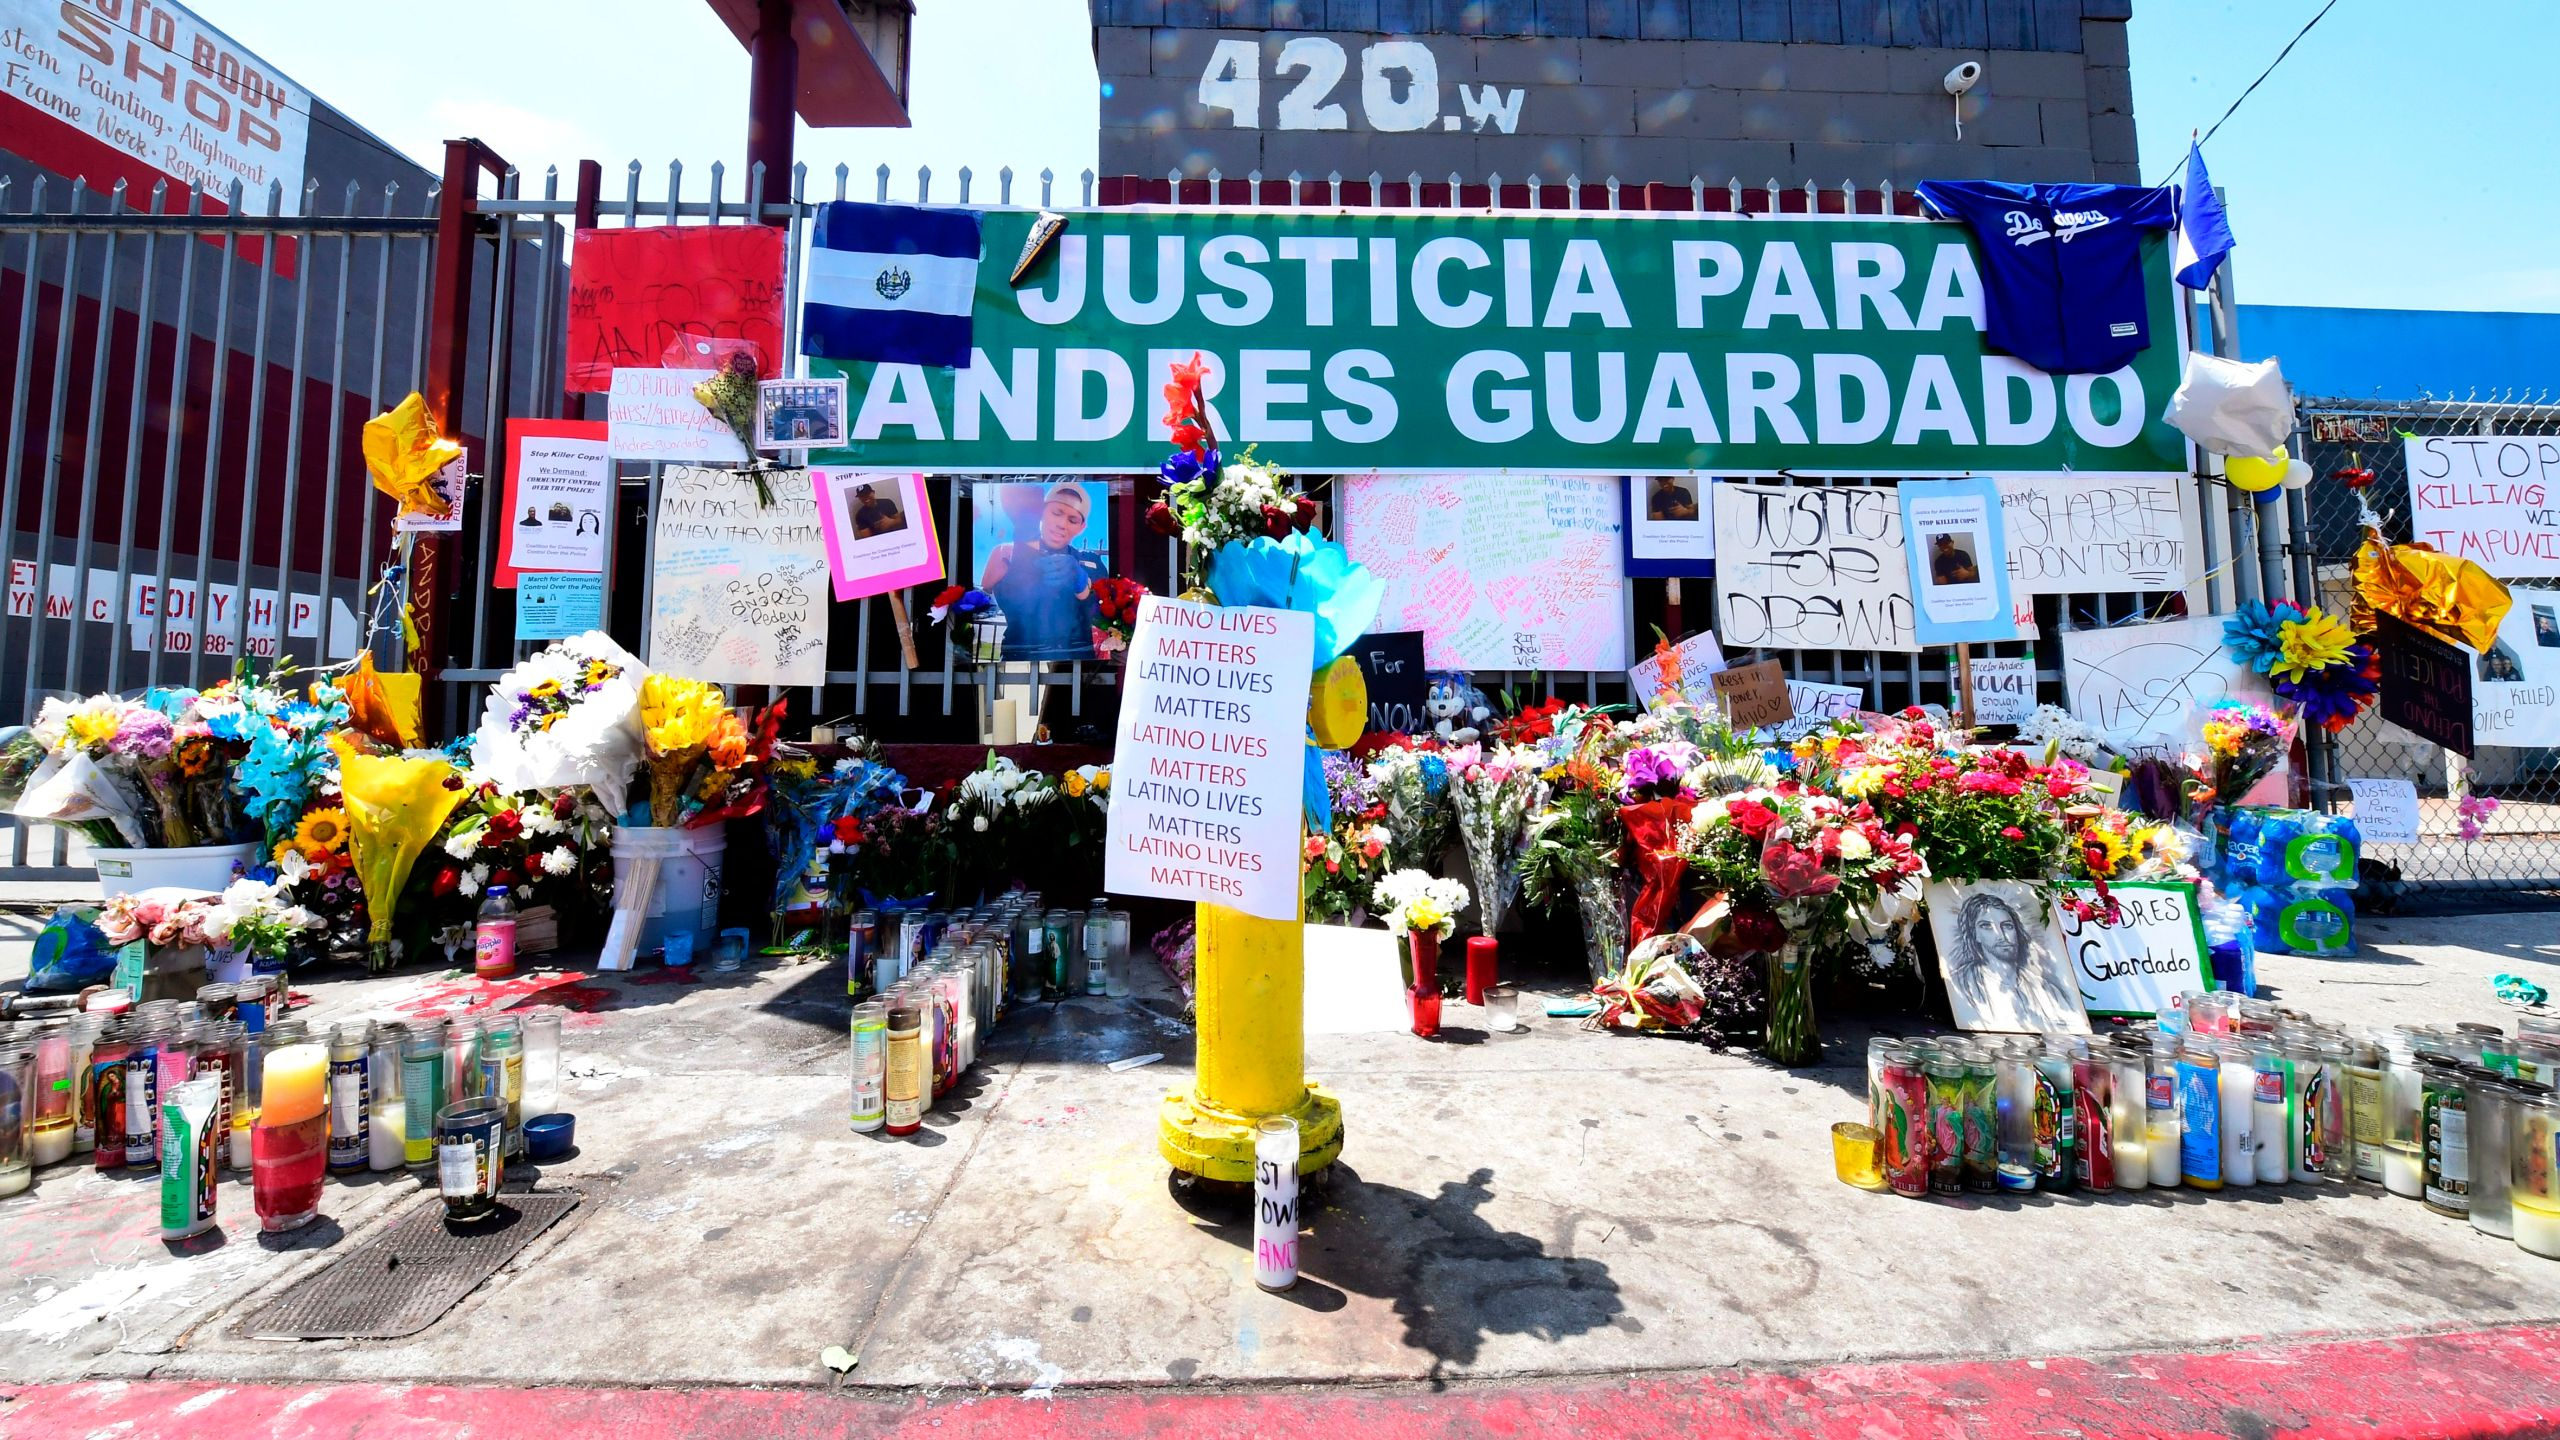 A makeshift memorial for Andres Guardado is seen on June 23, 2020, near where he was fatally shot outside Gardena. (Frederic J. Brown / AFP / Getty Images)